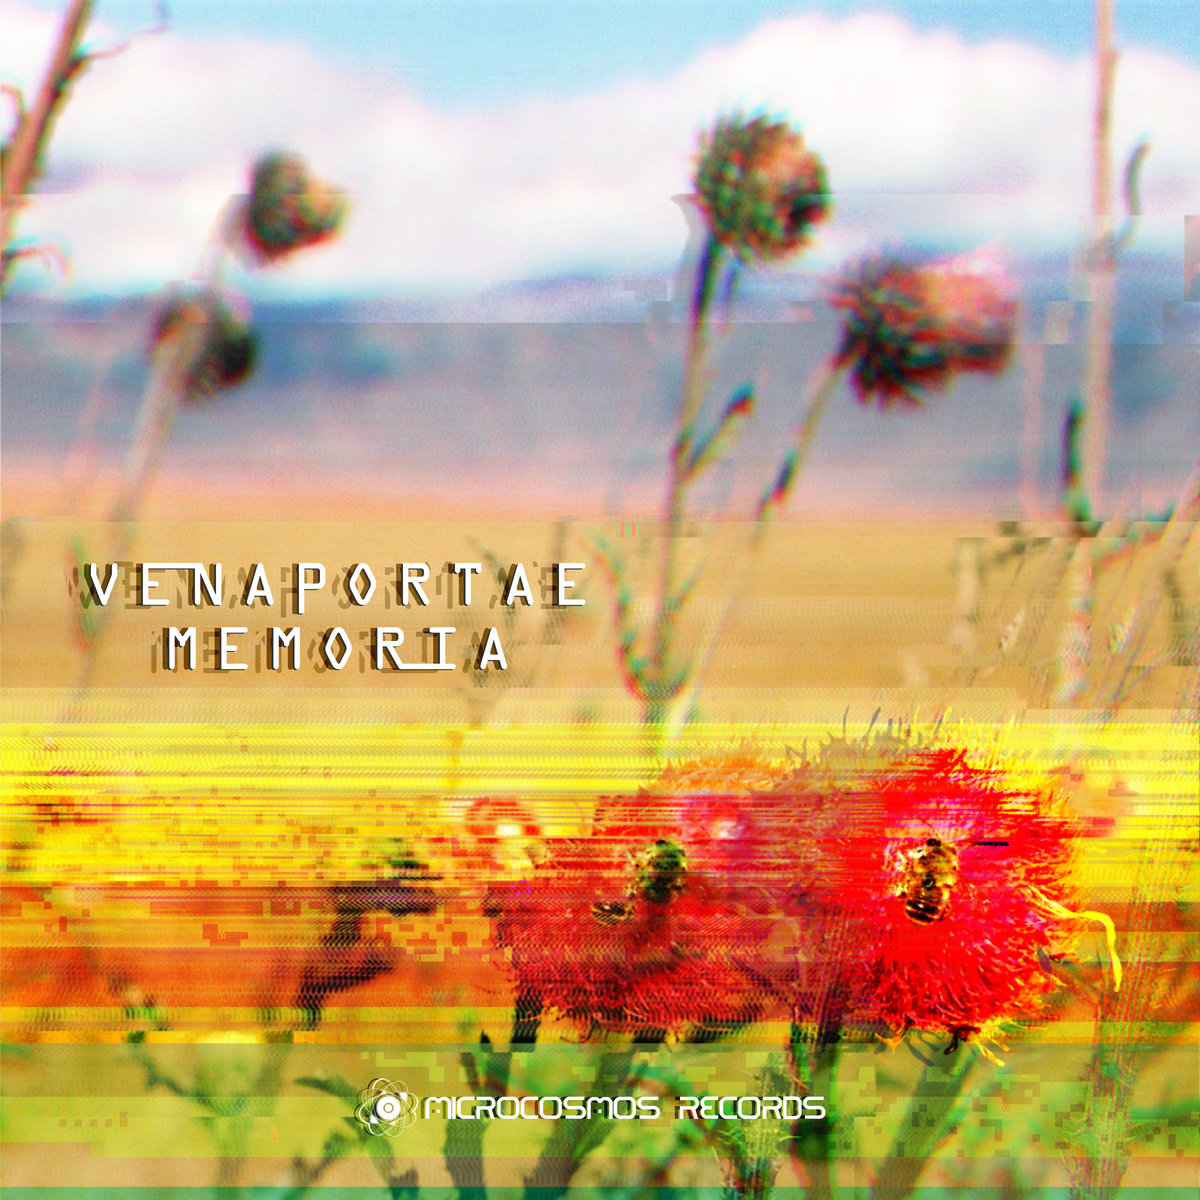 Vena Portae - Photographic Film @ 'Memoria' album (ambient, chill-out)